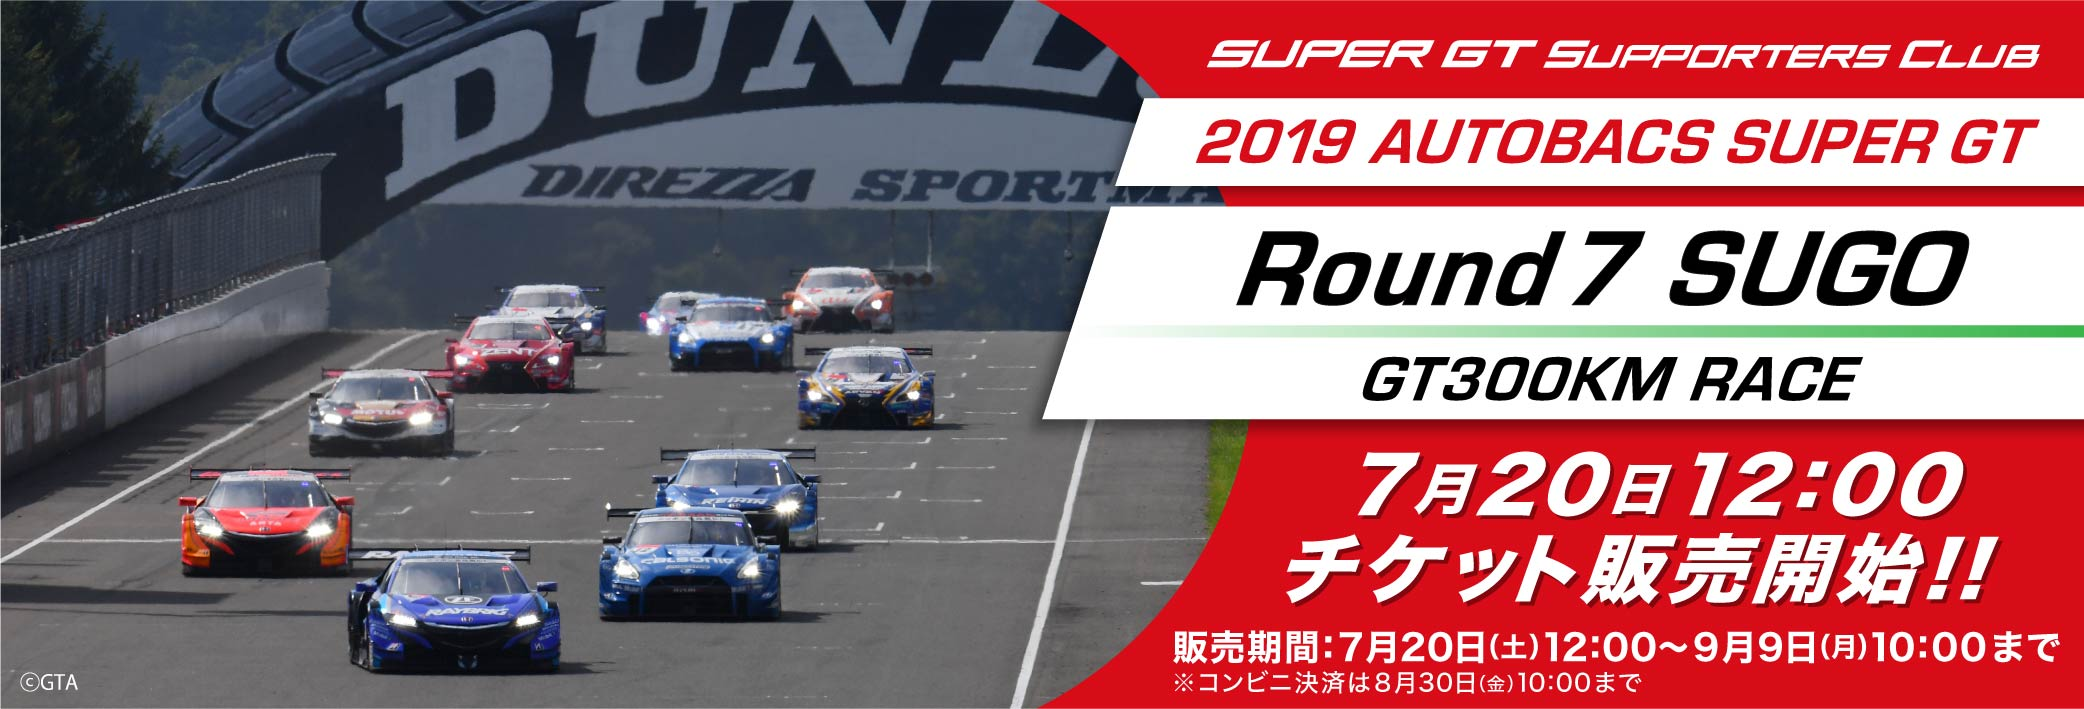 2019 AUTOBACS SUPER GT Rd.7 SUGO GT 300KM RACE チケット販売のご案内